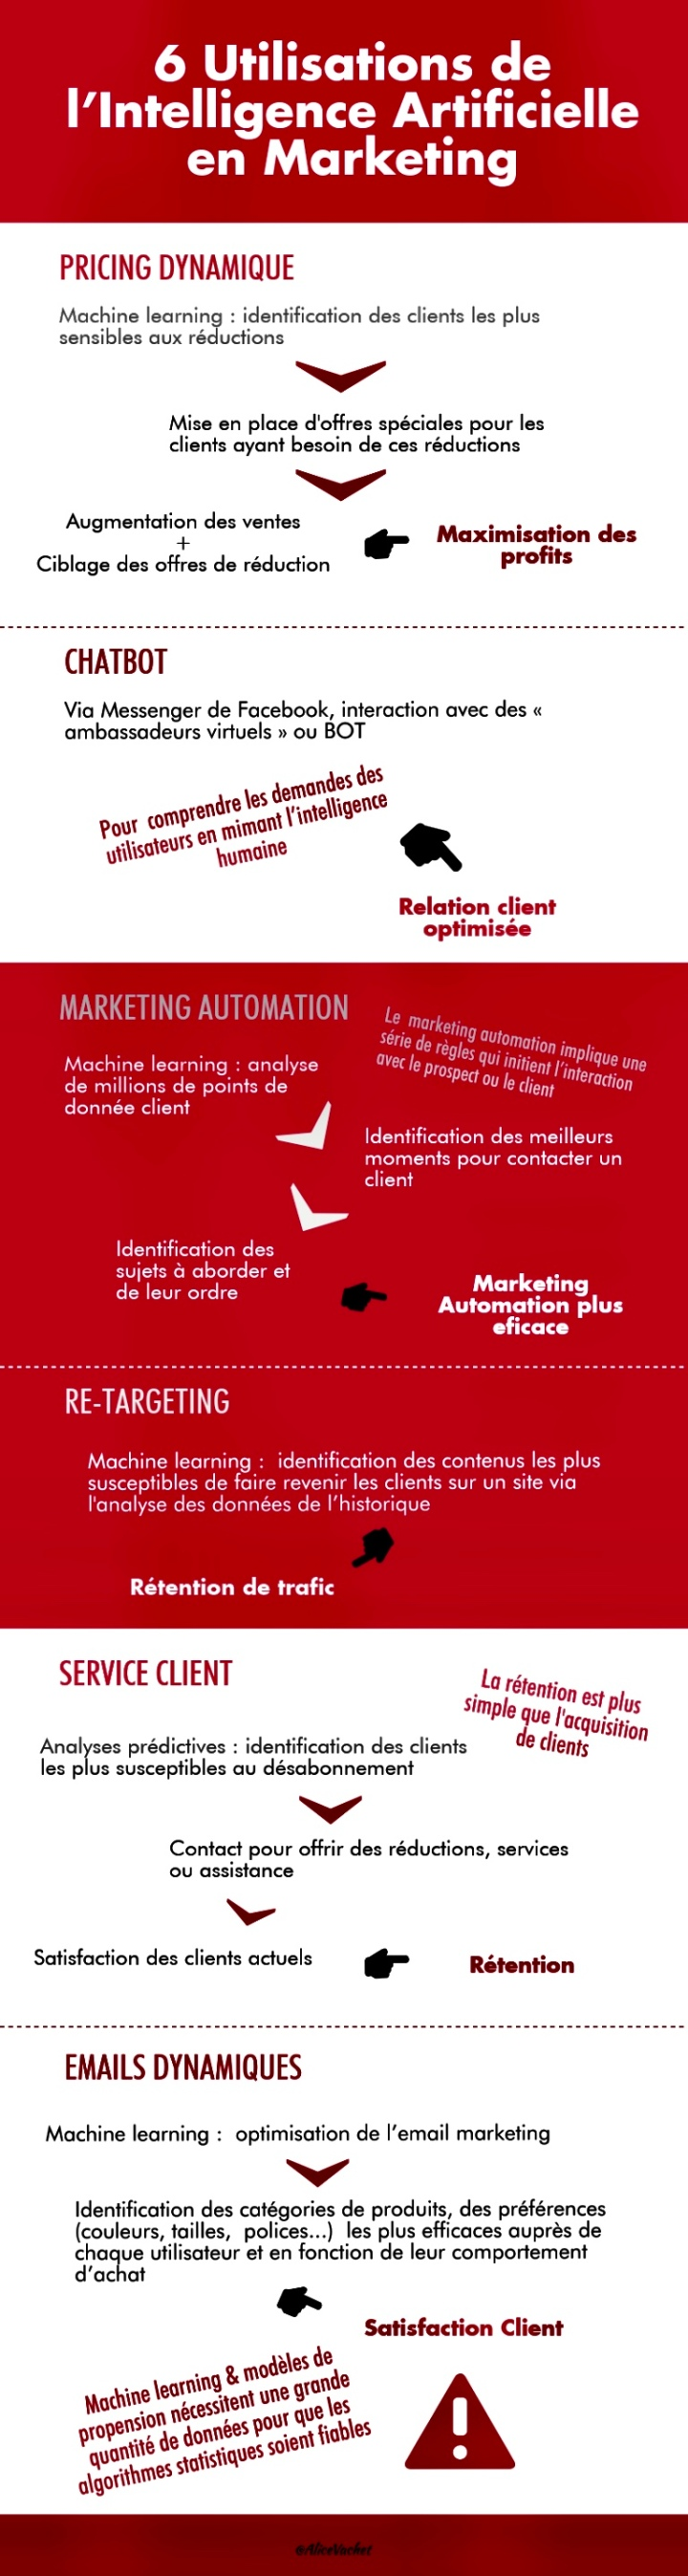 [Infographie] 6 Utilisations de l'Intelligence Artificielle en Marketing 🤓